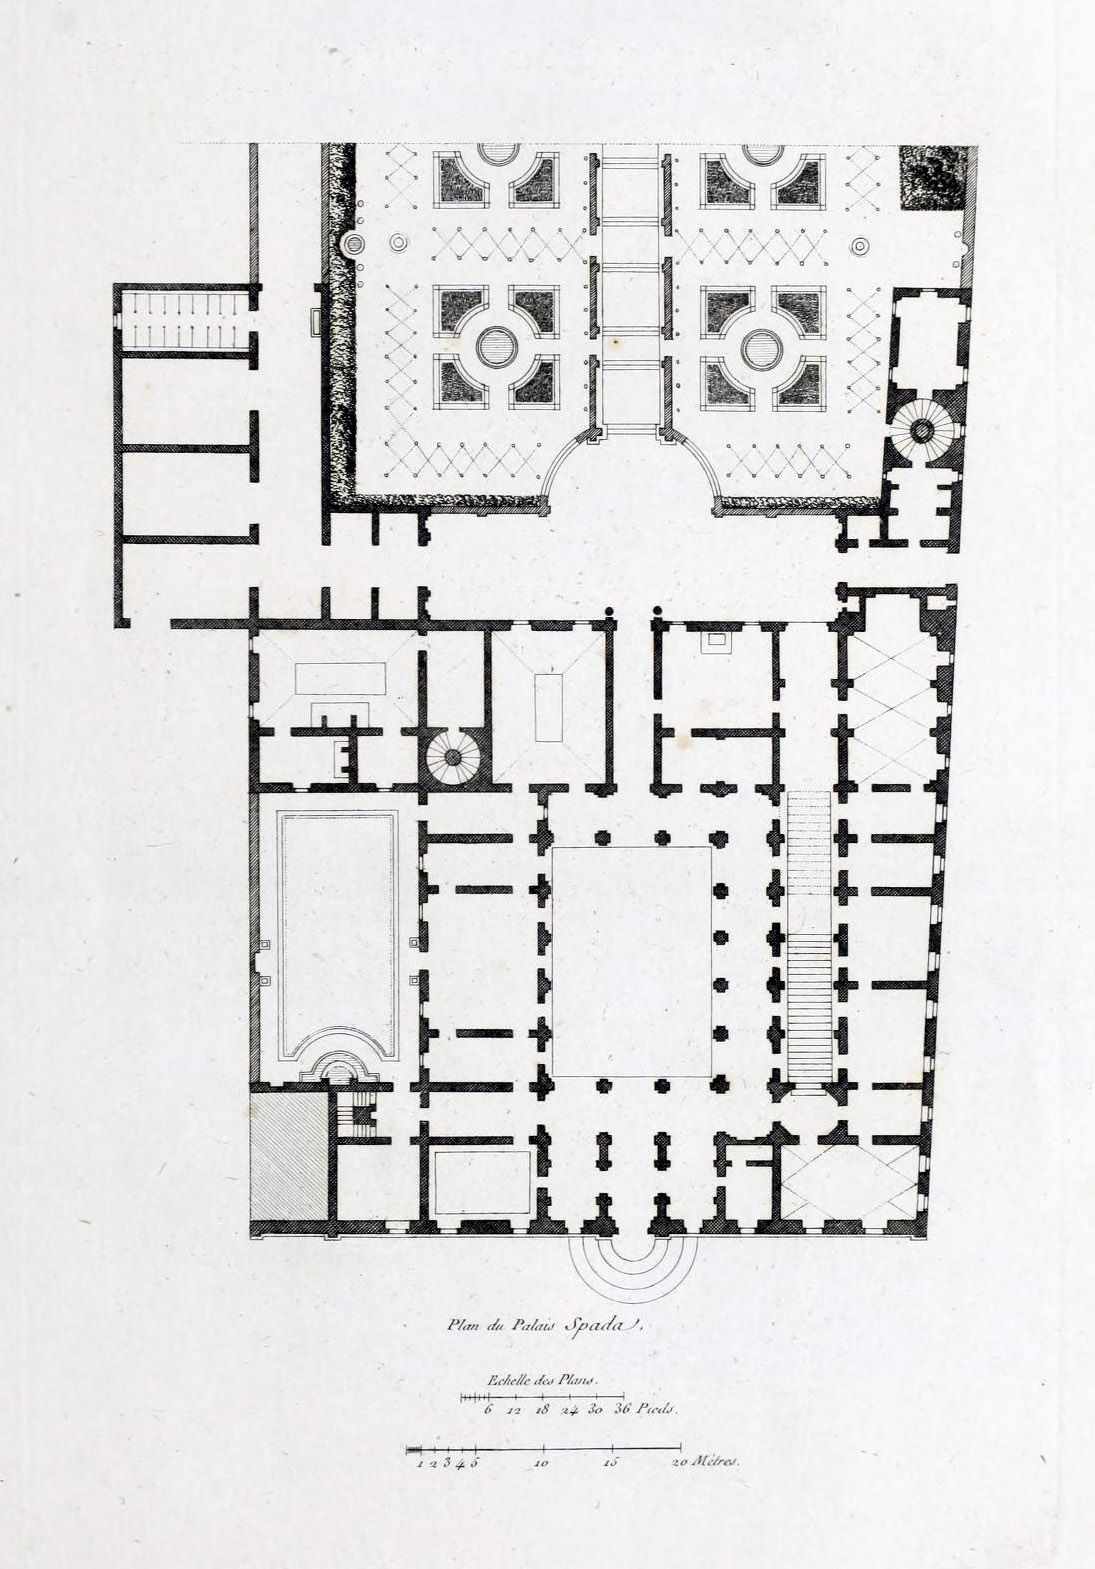 Floor Plan Of The Palazzo Spada Rome